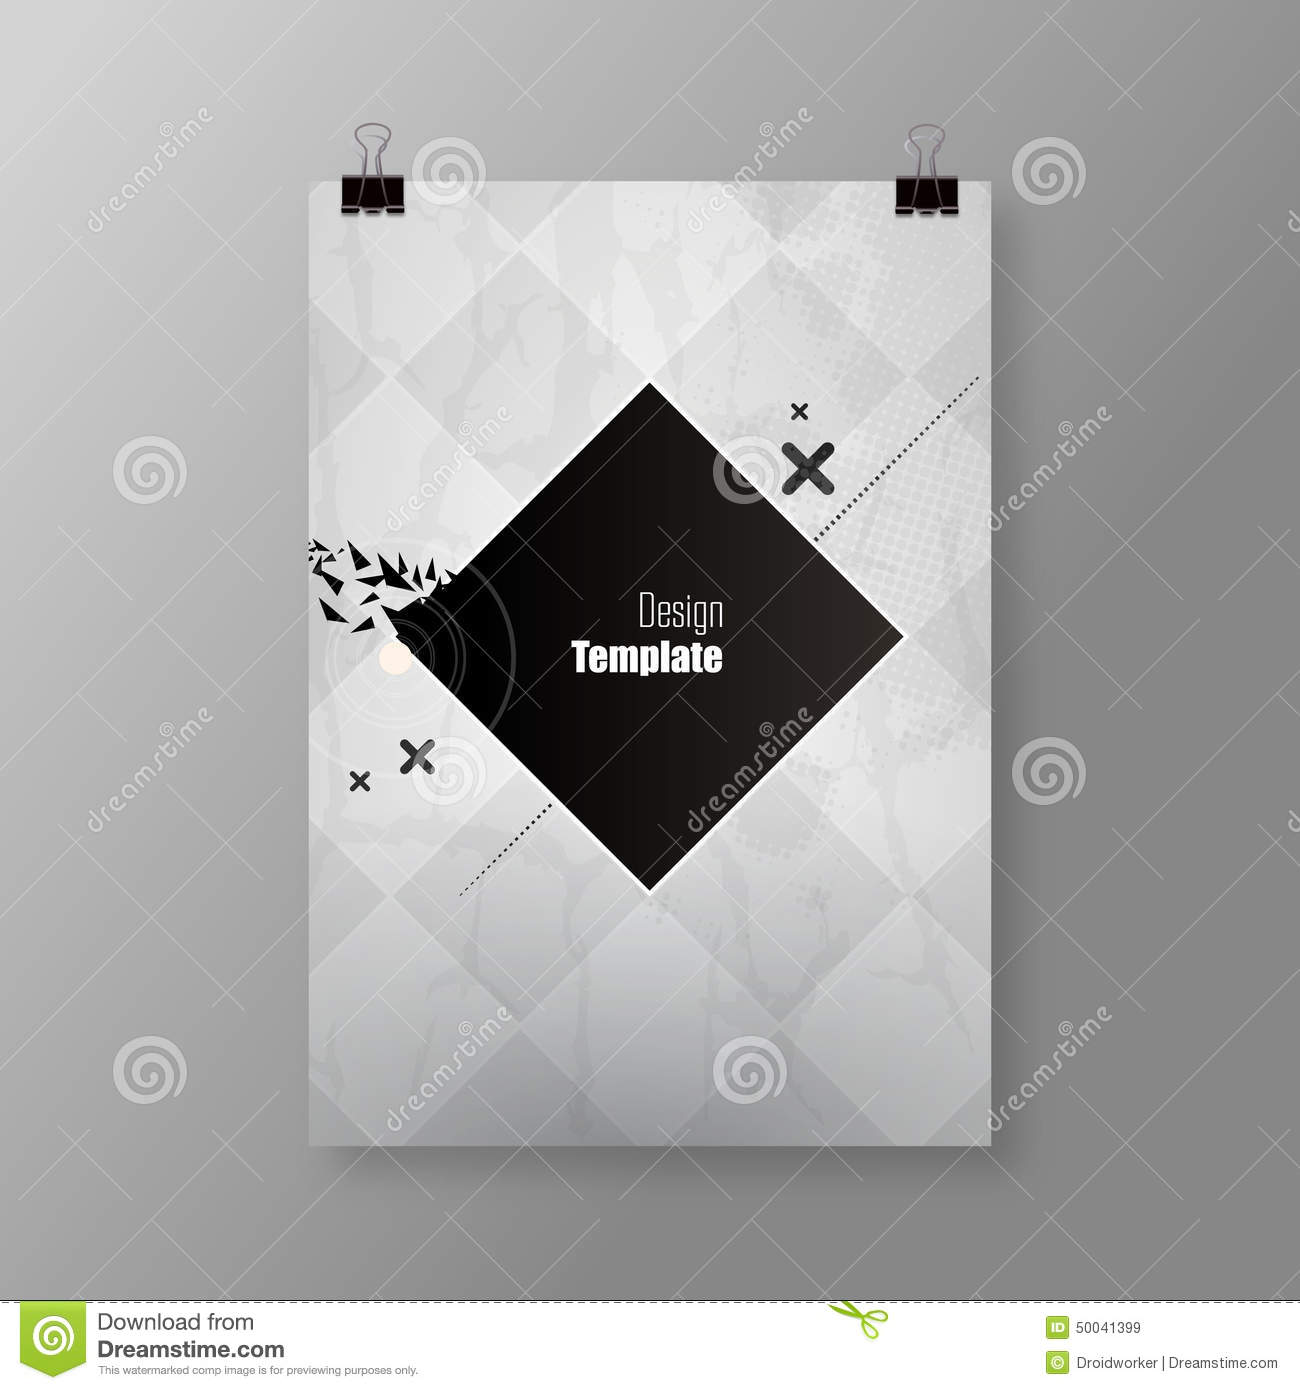 Poster design eps - A4 A3 Format Poster Minimal Abstract Background With Your Text Paper Clips And Shadow